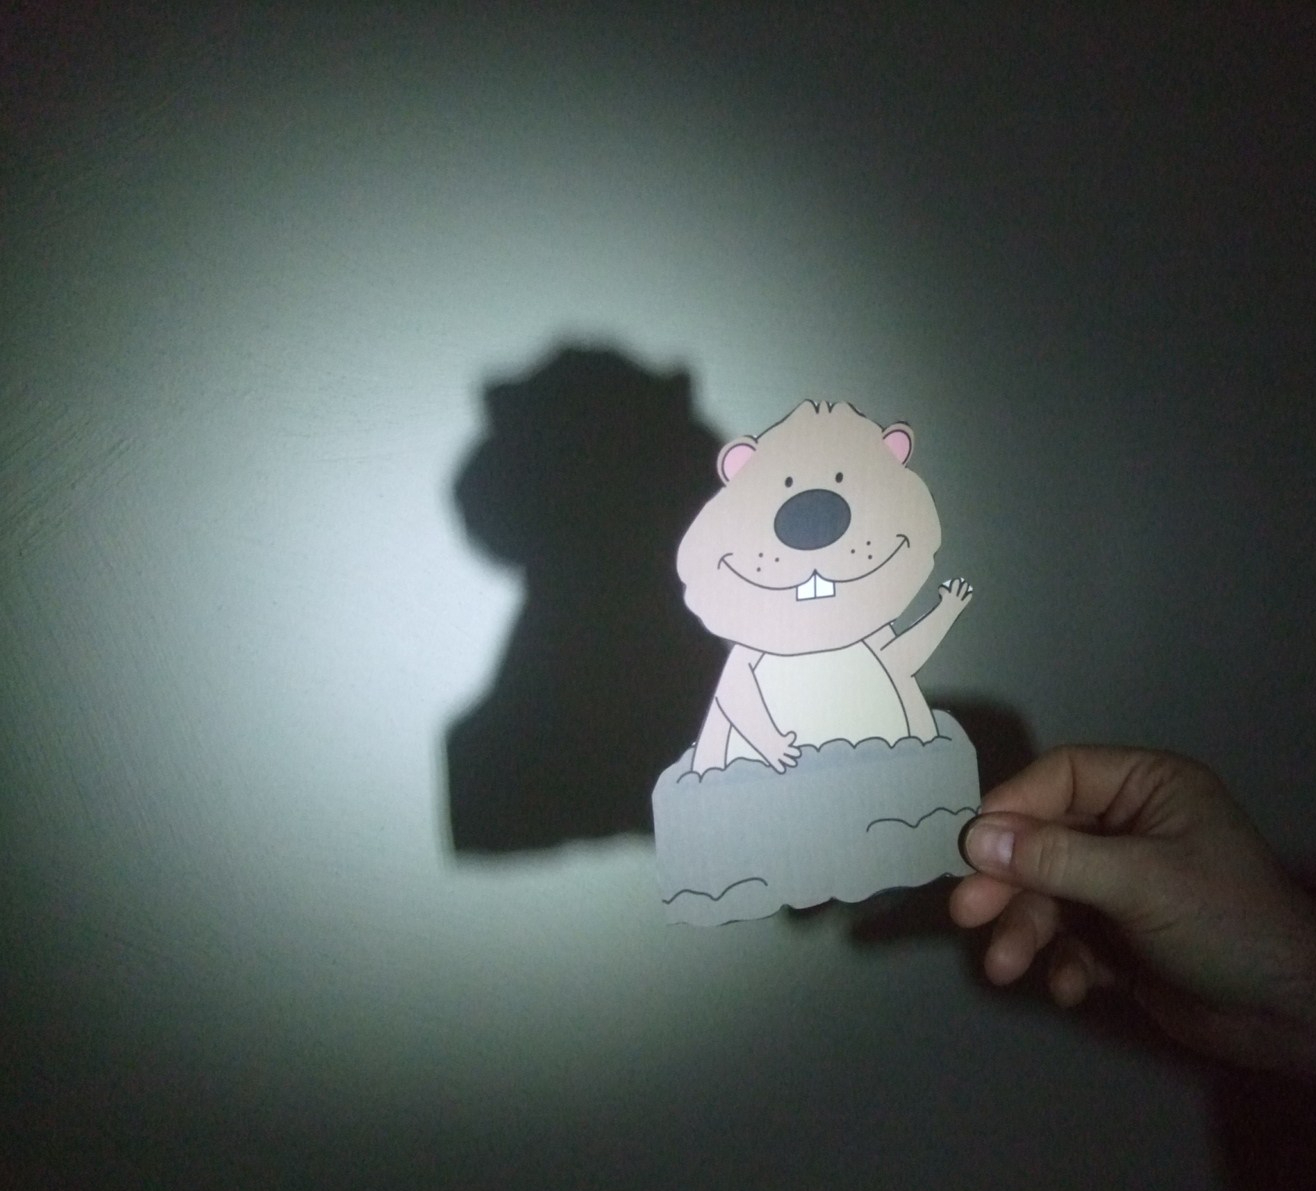 hight resolution of Groundhog Day Activities (shadow experiments